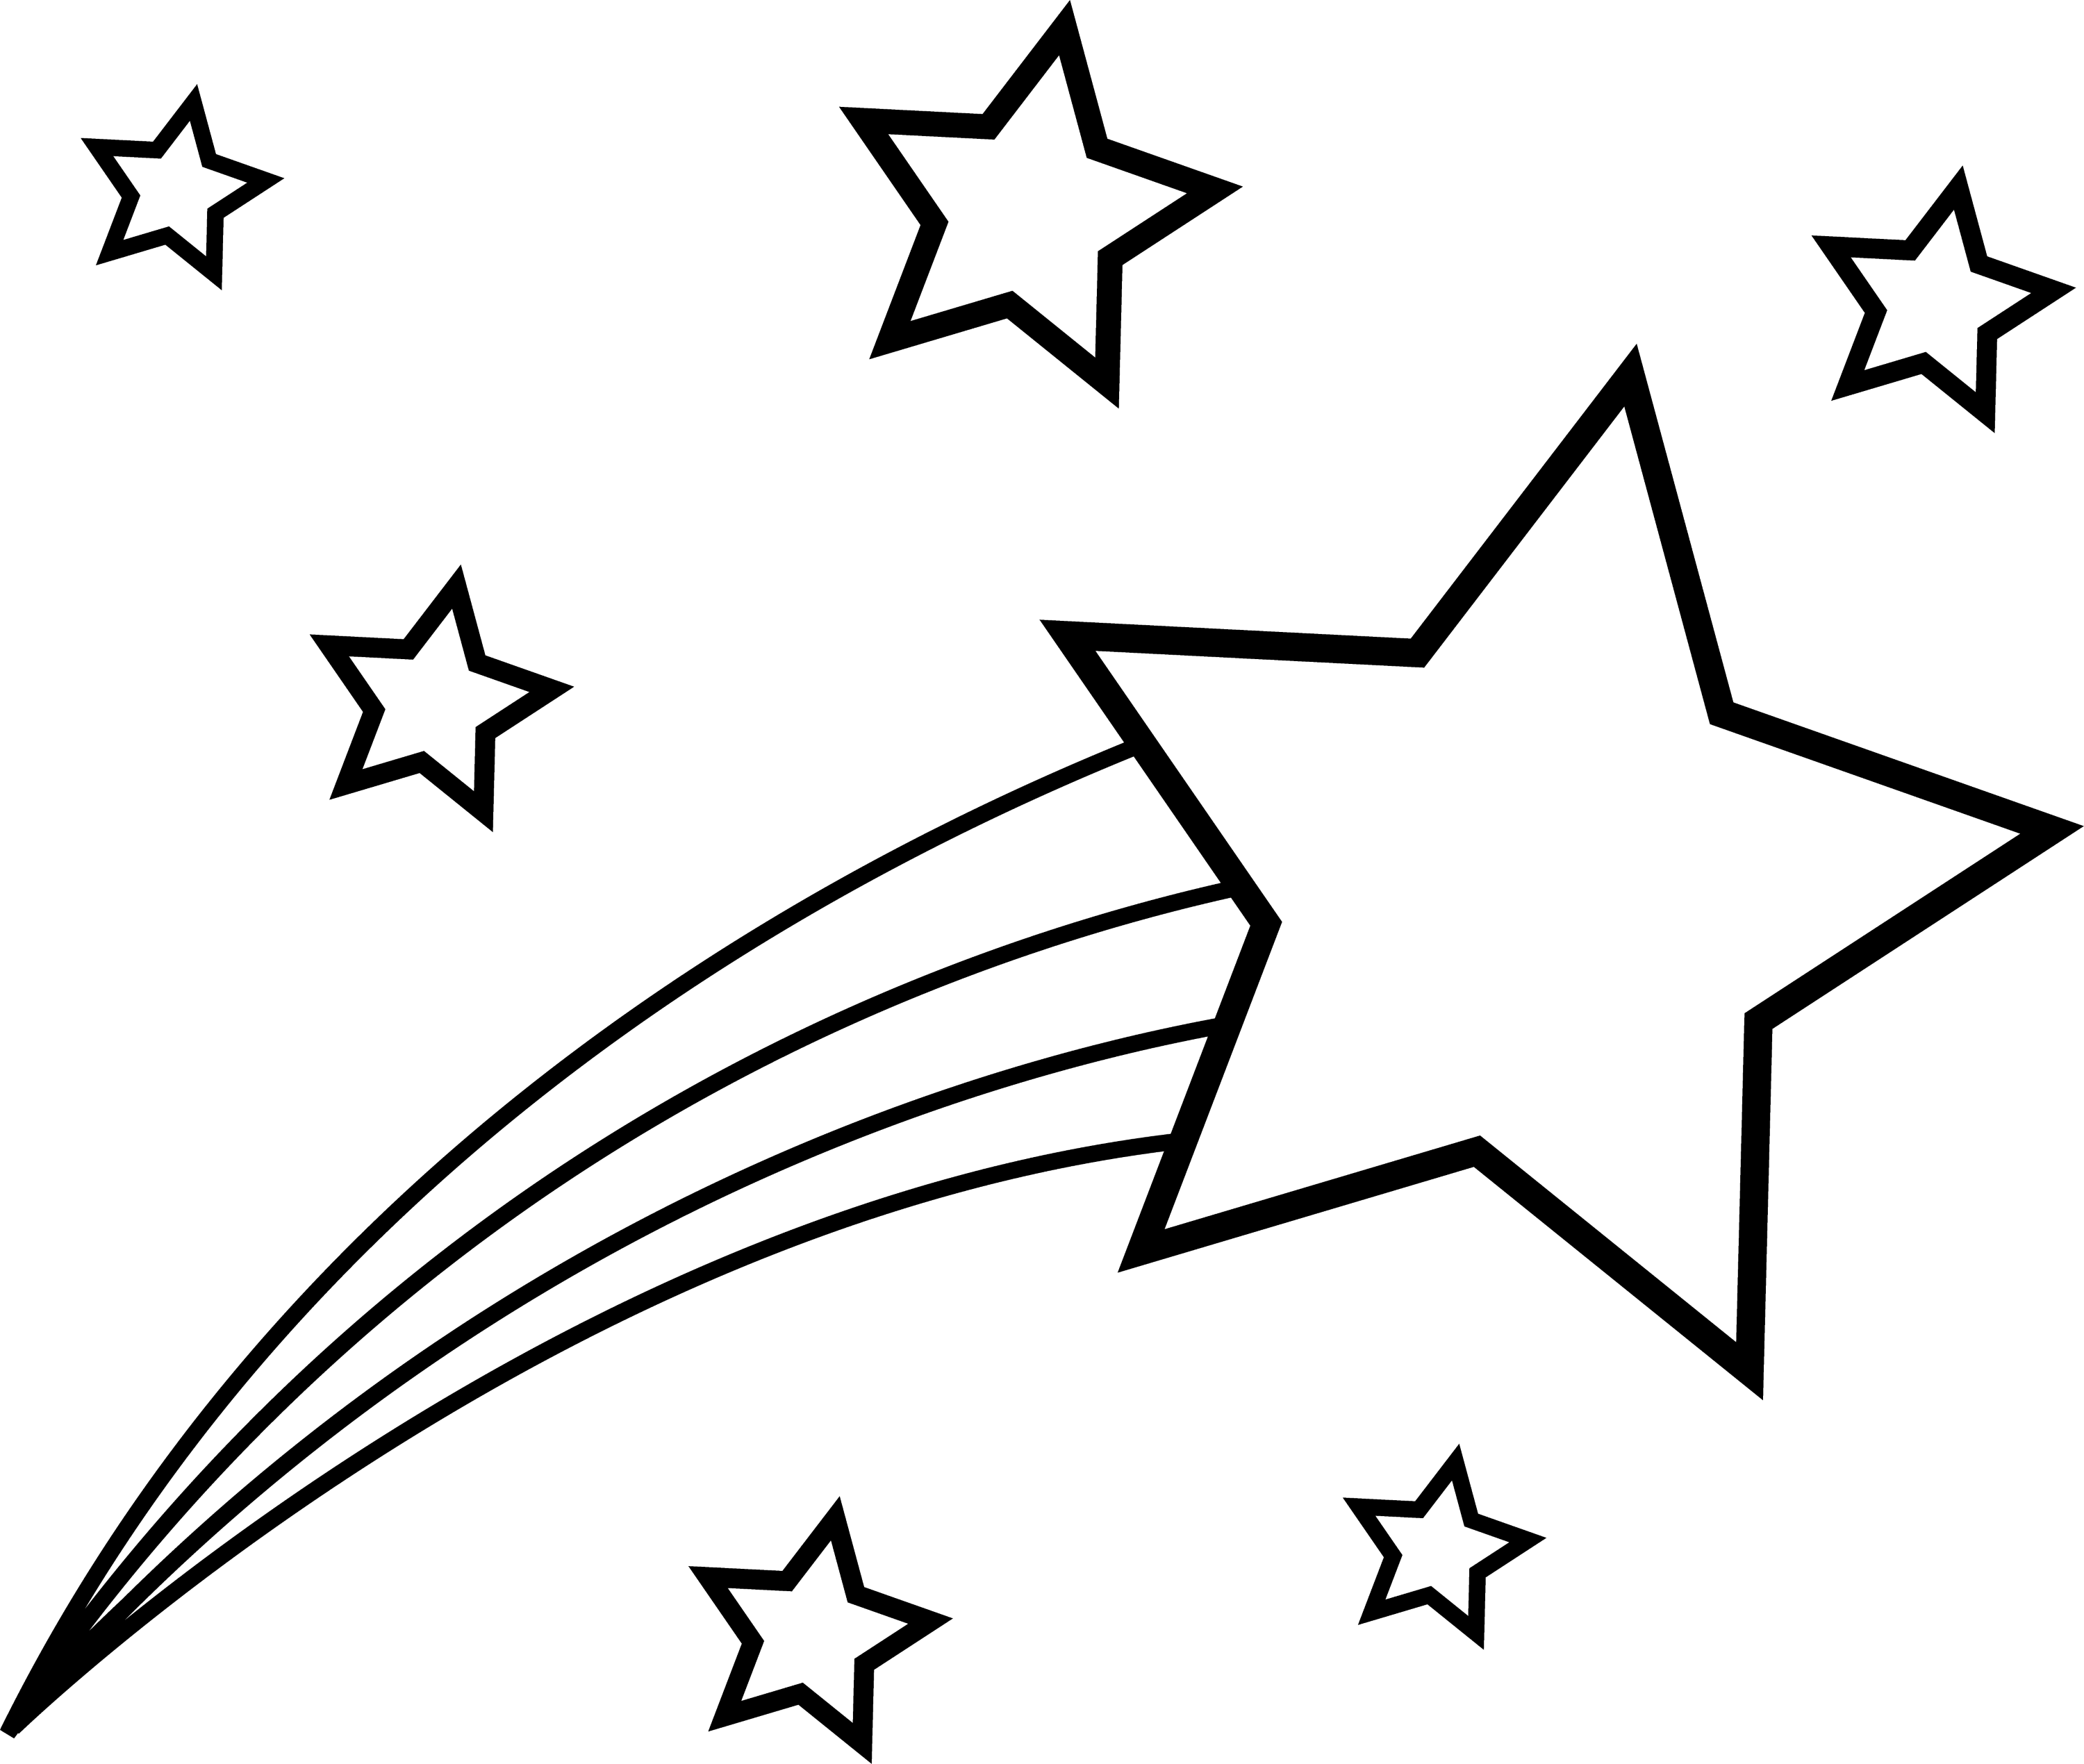 Pictures to color in - Black And White Shooting Star Design